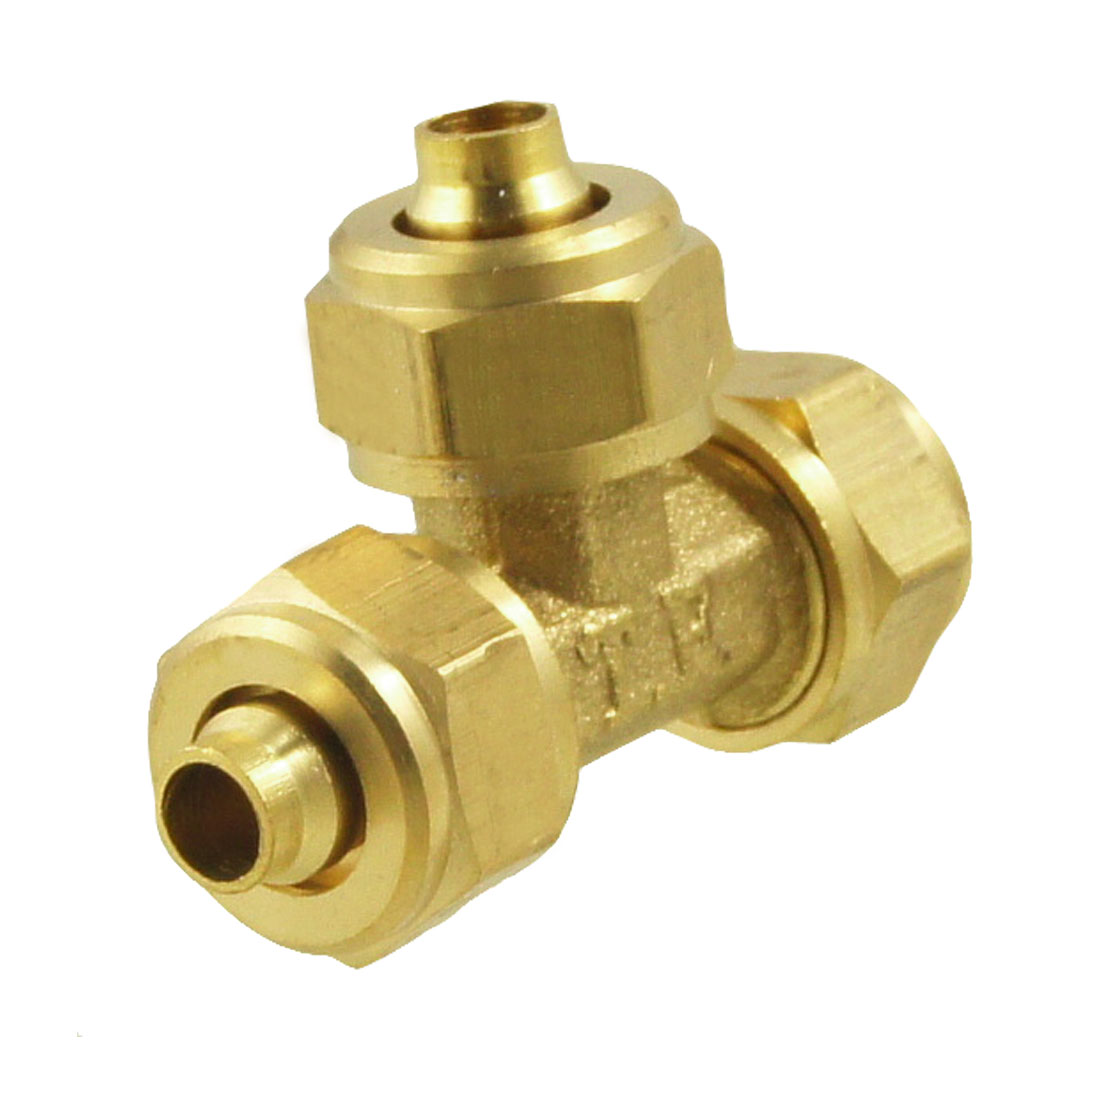 5.5mm to 5.5mm Pneumatic Hose Air Fitting Tee Quick Connector Coupler